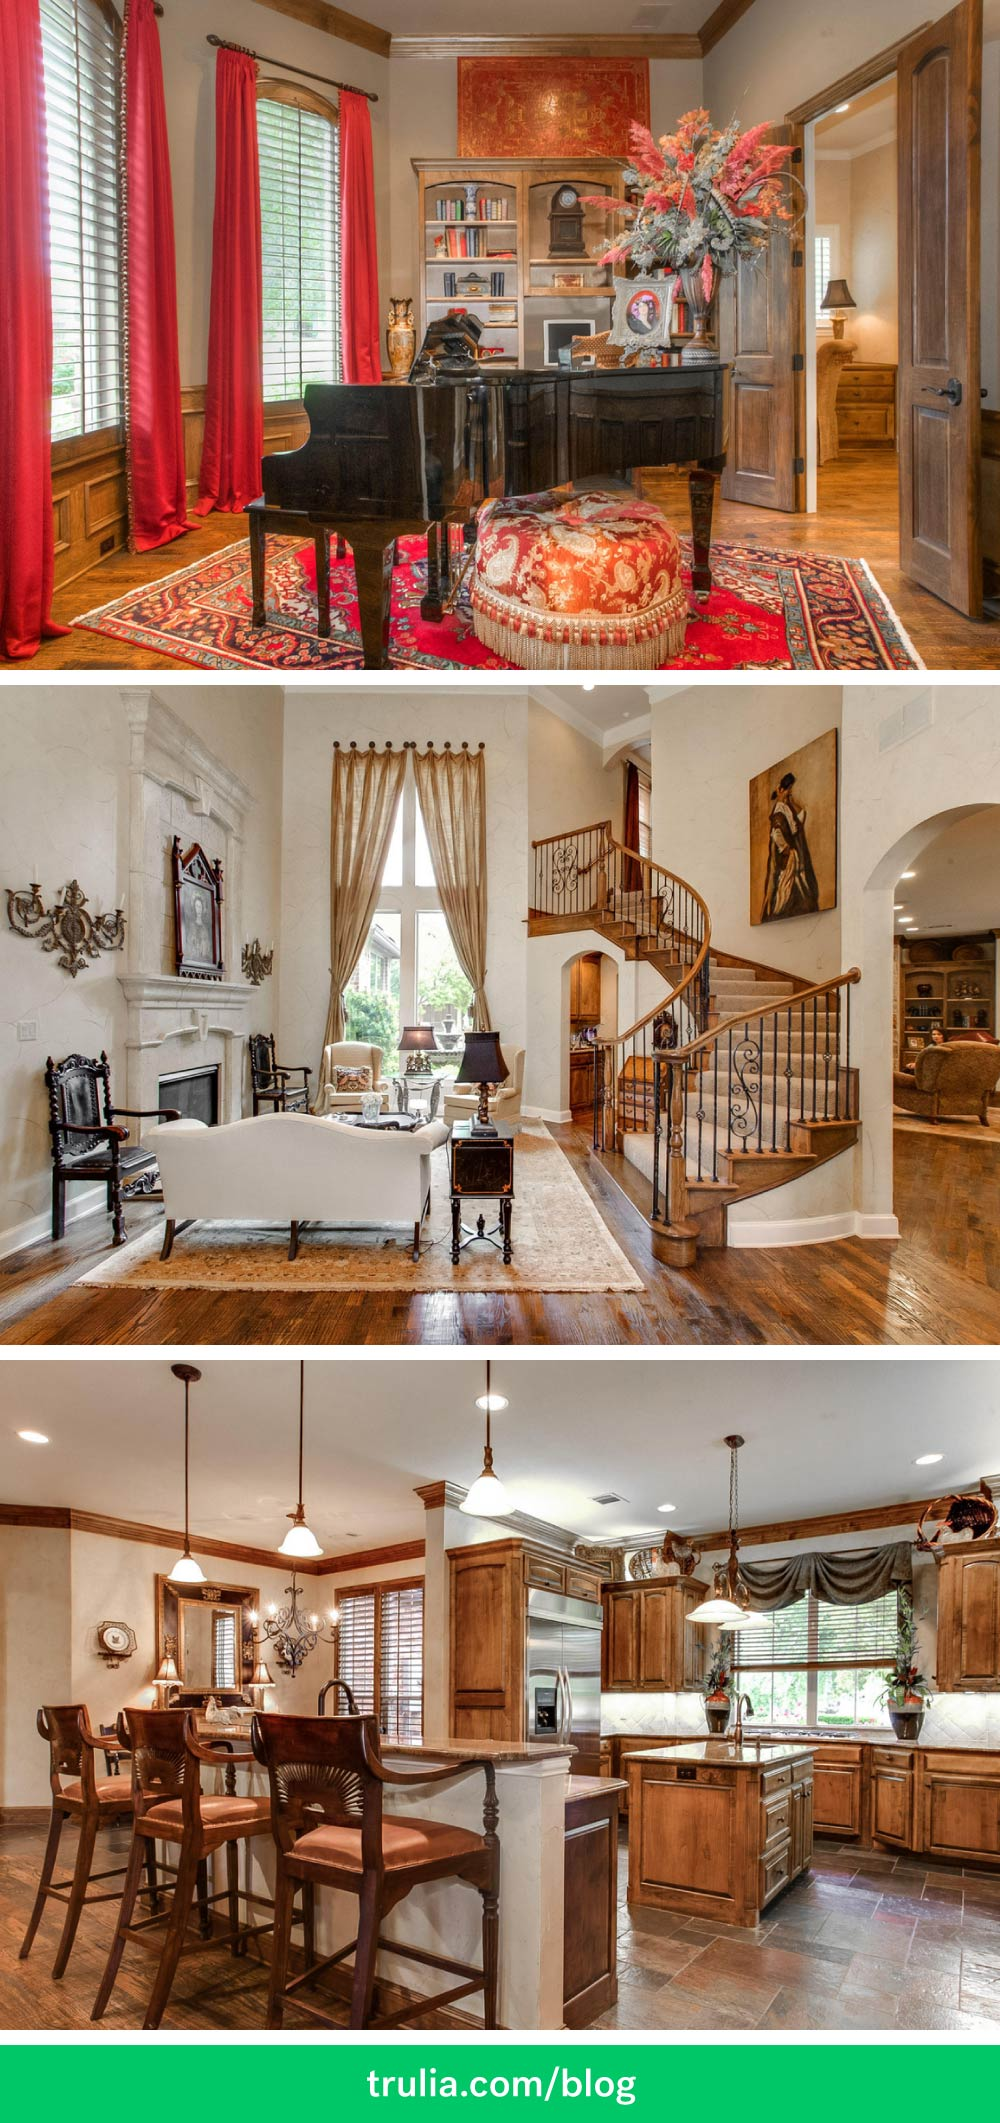 pinterest home decorating ideas Fort Worth